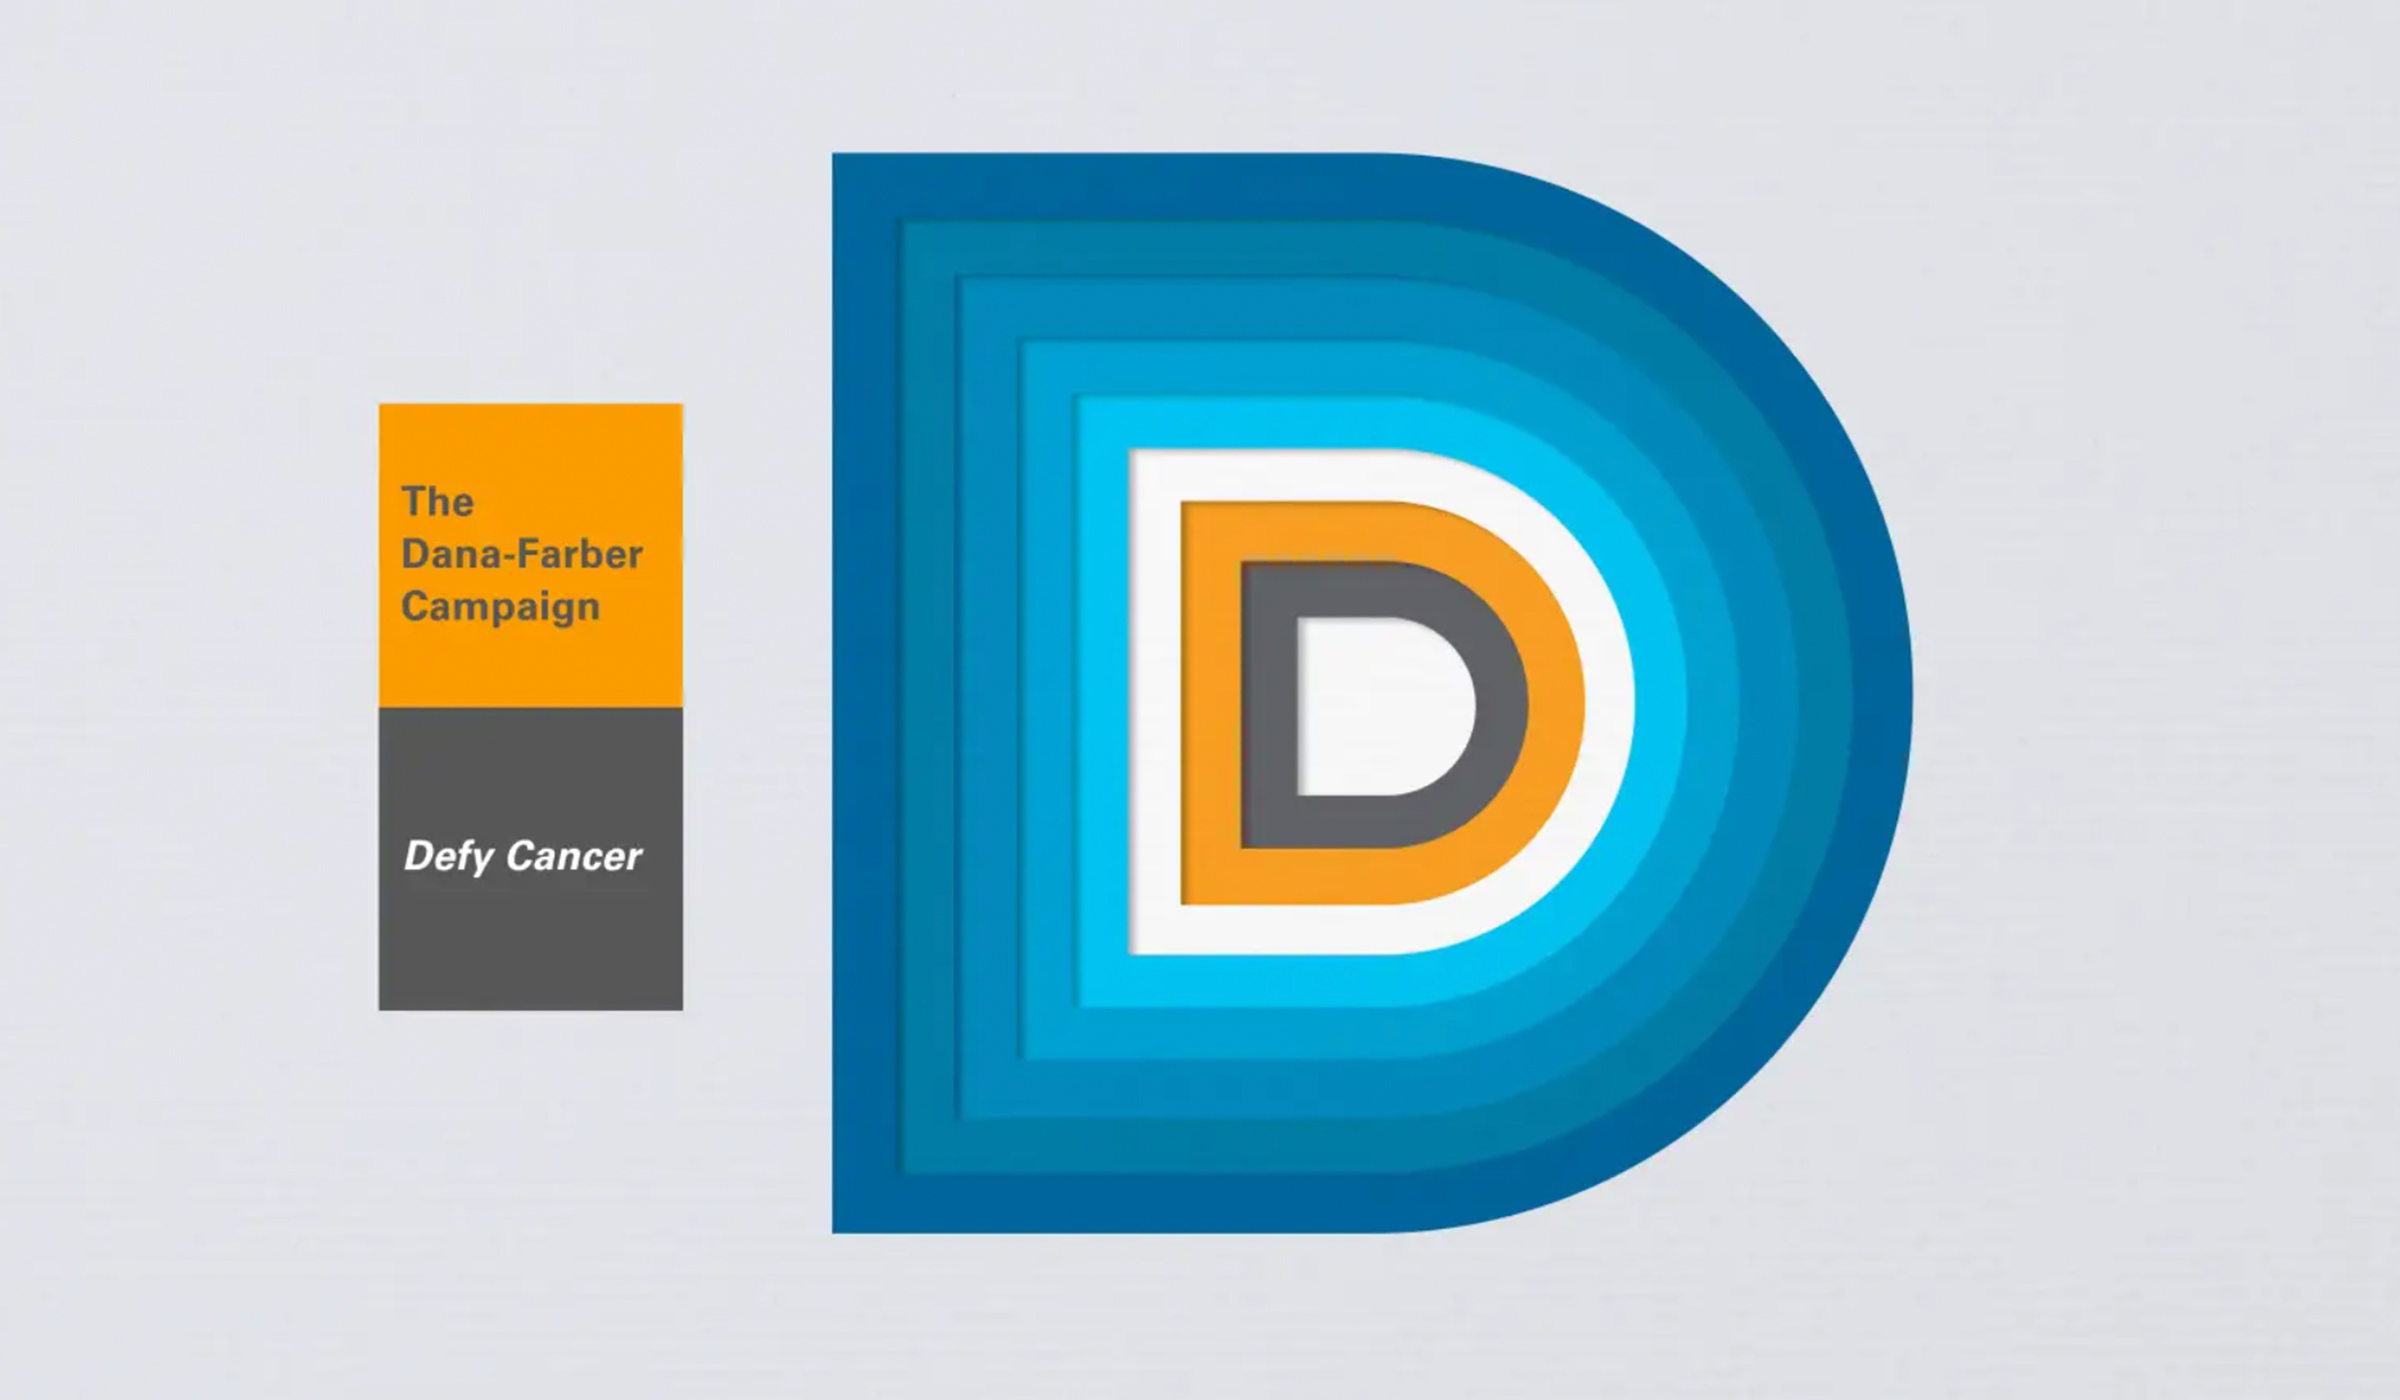 Dana-Farber Cancer Institute Launches Defy Cancer Campaign